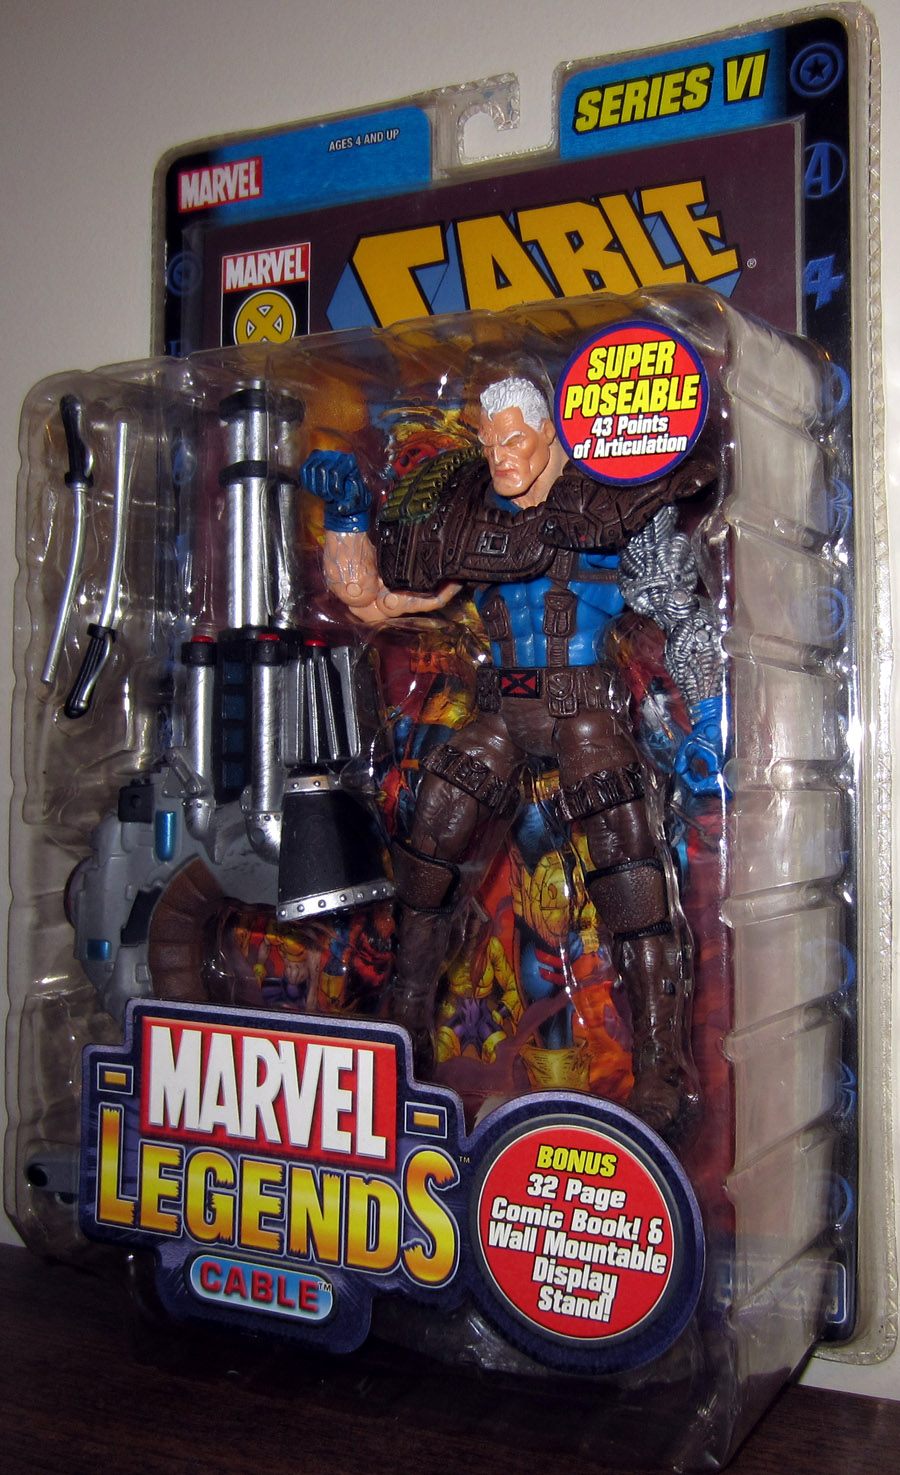 Cable (Marvel Legends, with brown legs)